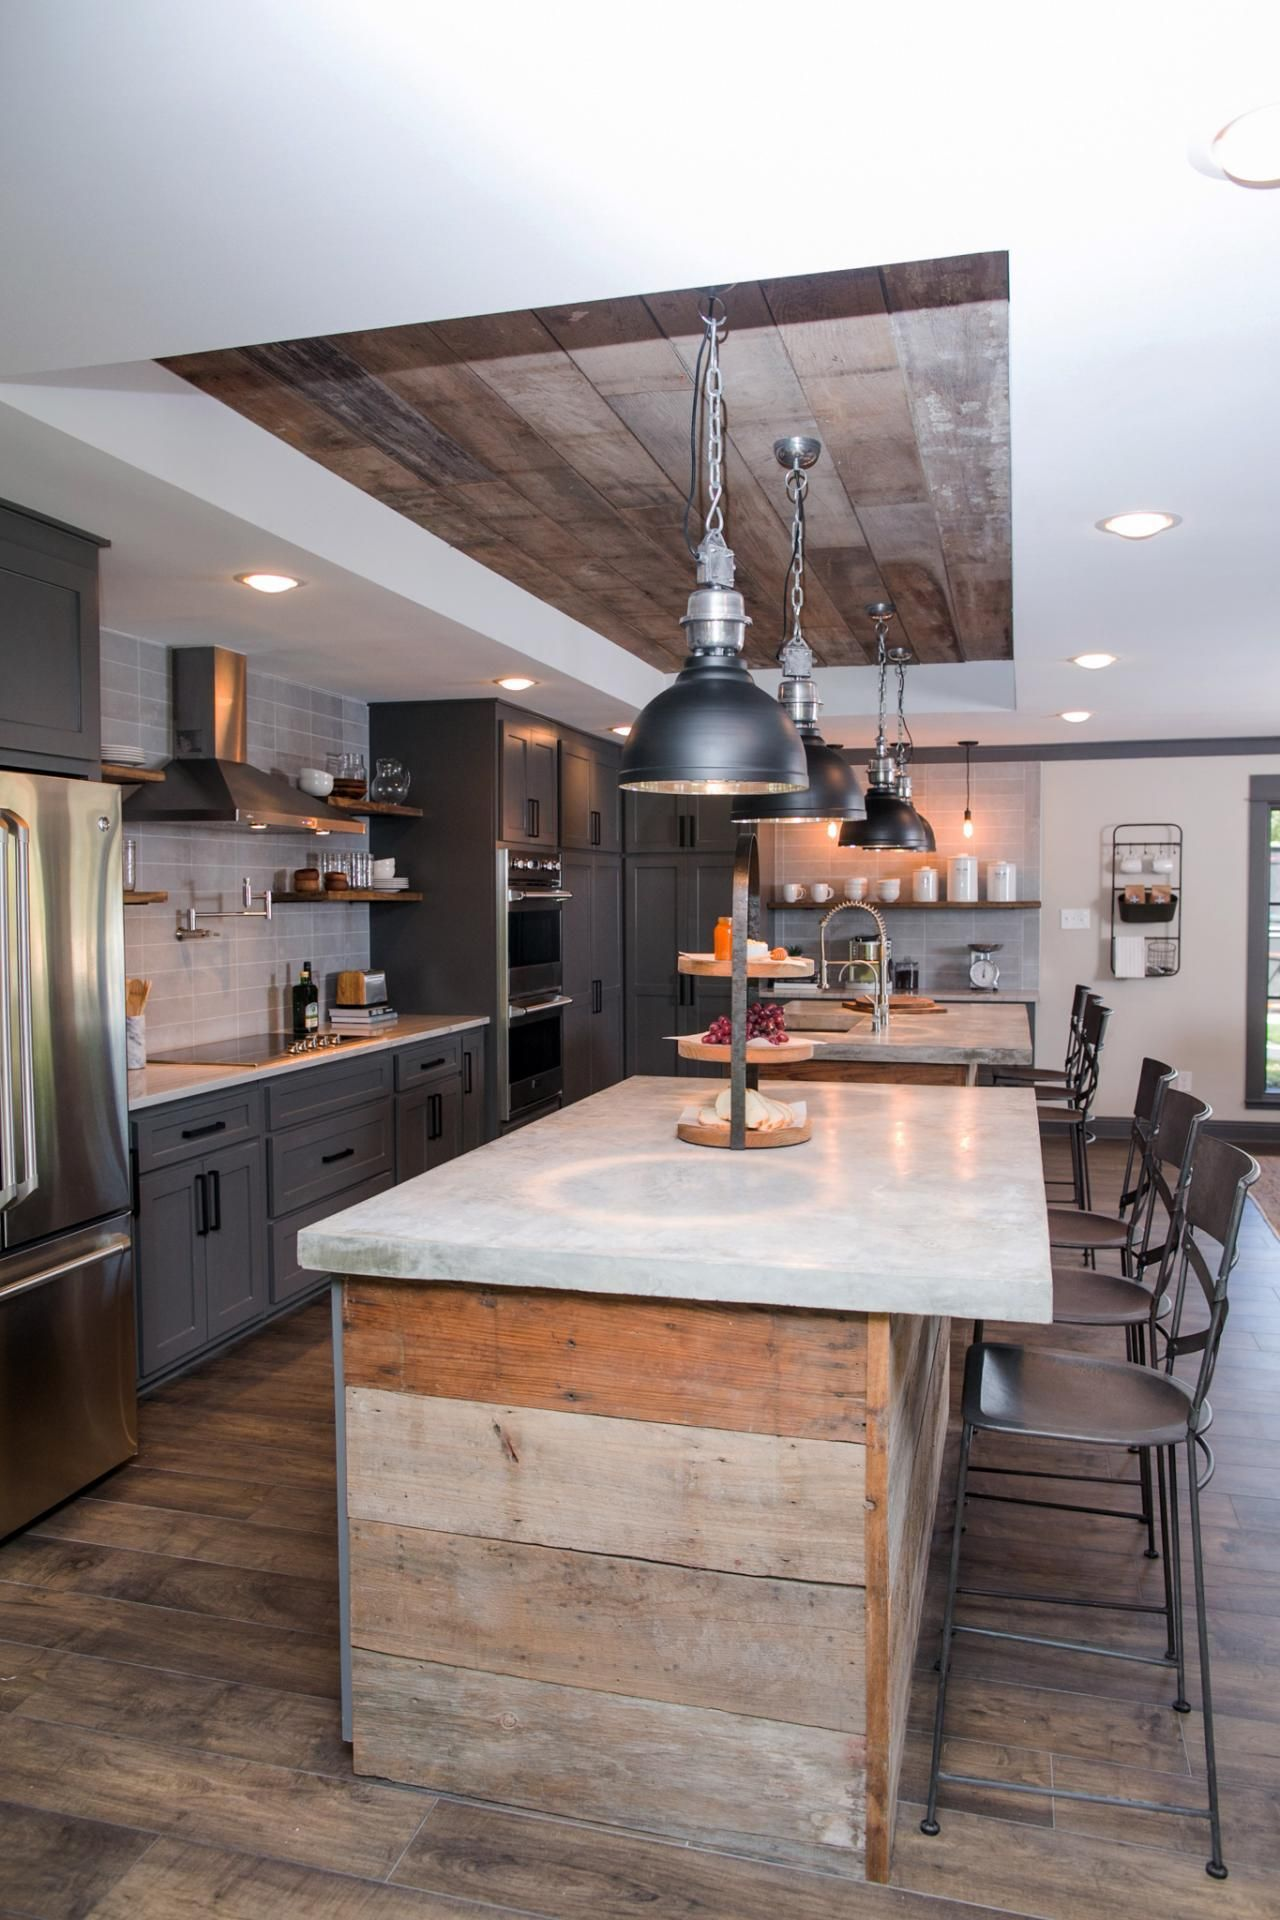 A Fixer Upper Bachelor Pad? Get Chip + Jo's Single-Guy